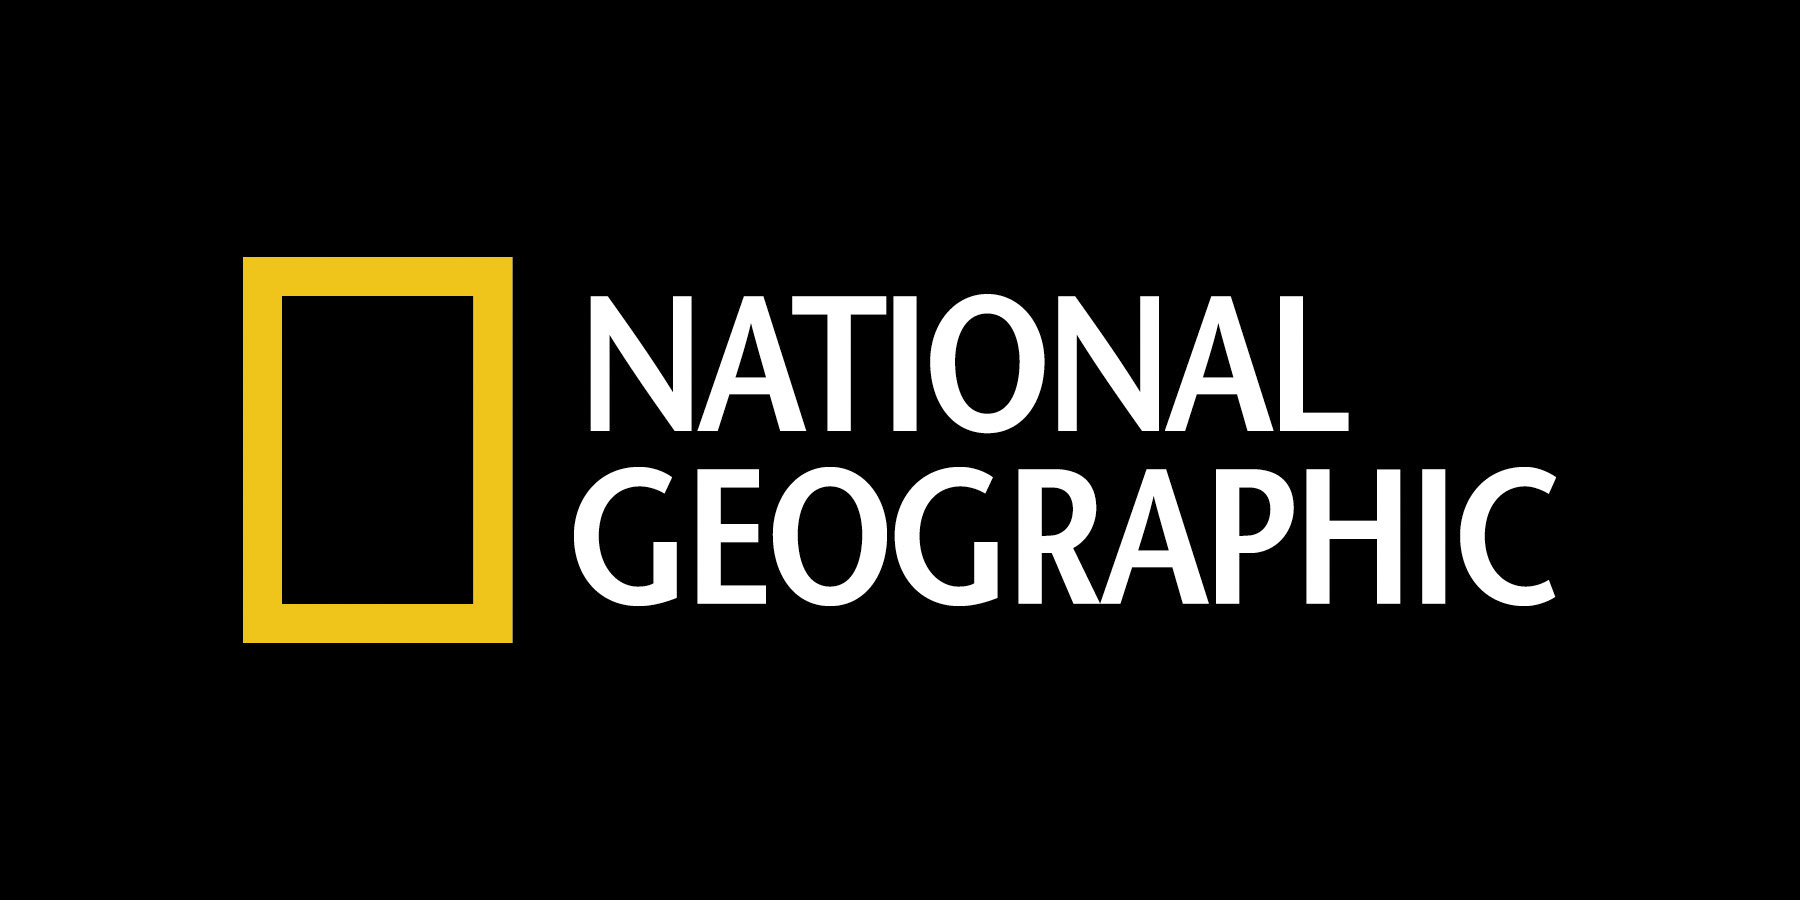 National-Geographic-logo